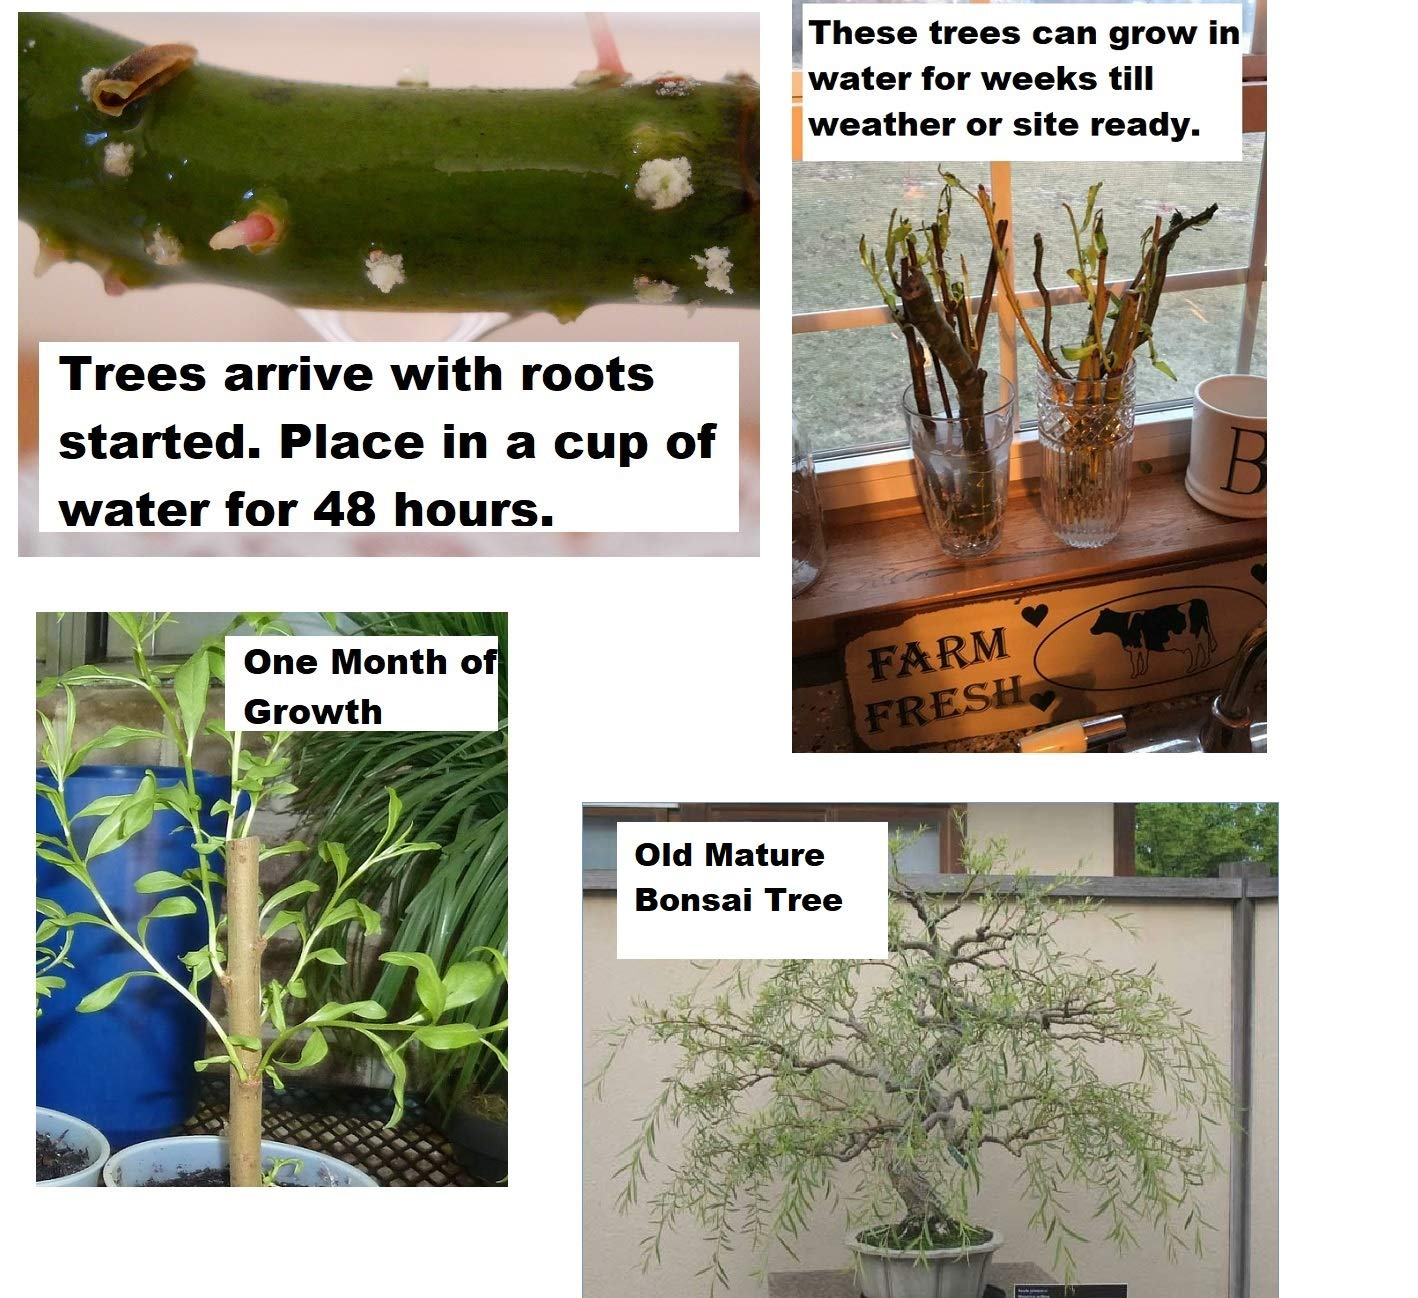 Bonsai Golden Weeping Willow Tree Cutting - Large Thick Trunk Rooited Tree Cut - Mature Bonsai Look Fast - Beautiful Arching Branches by CZ Grain (Image #1)